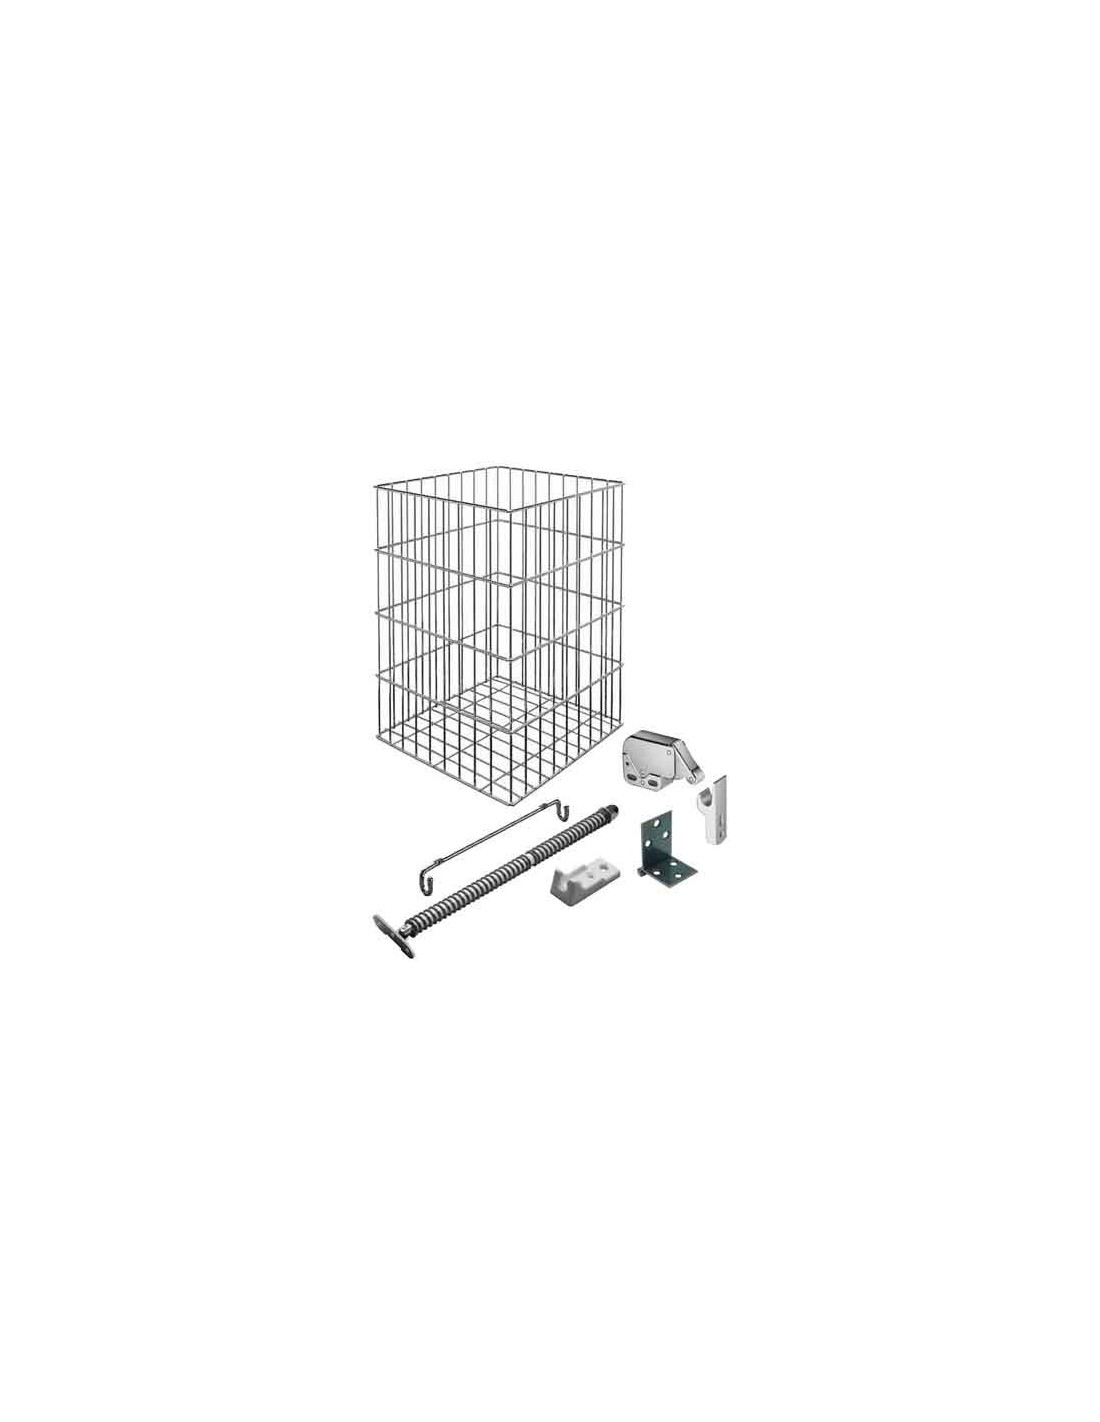 Chrome Laundry Basket Laundry Basket Chrome Wire And Fitting Kit Can Be Shelf